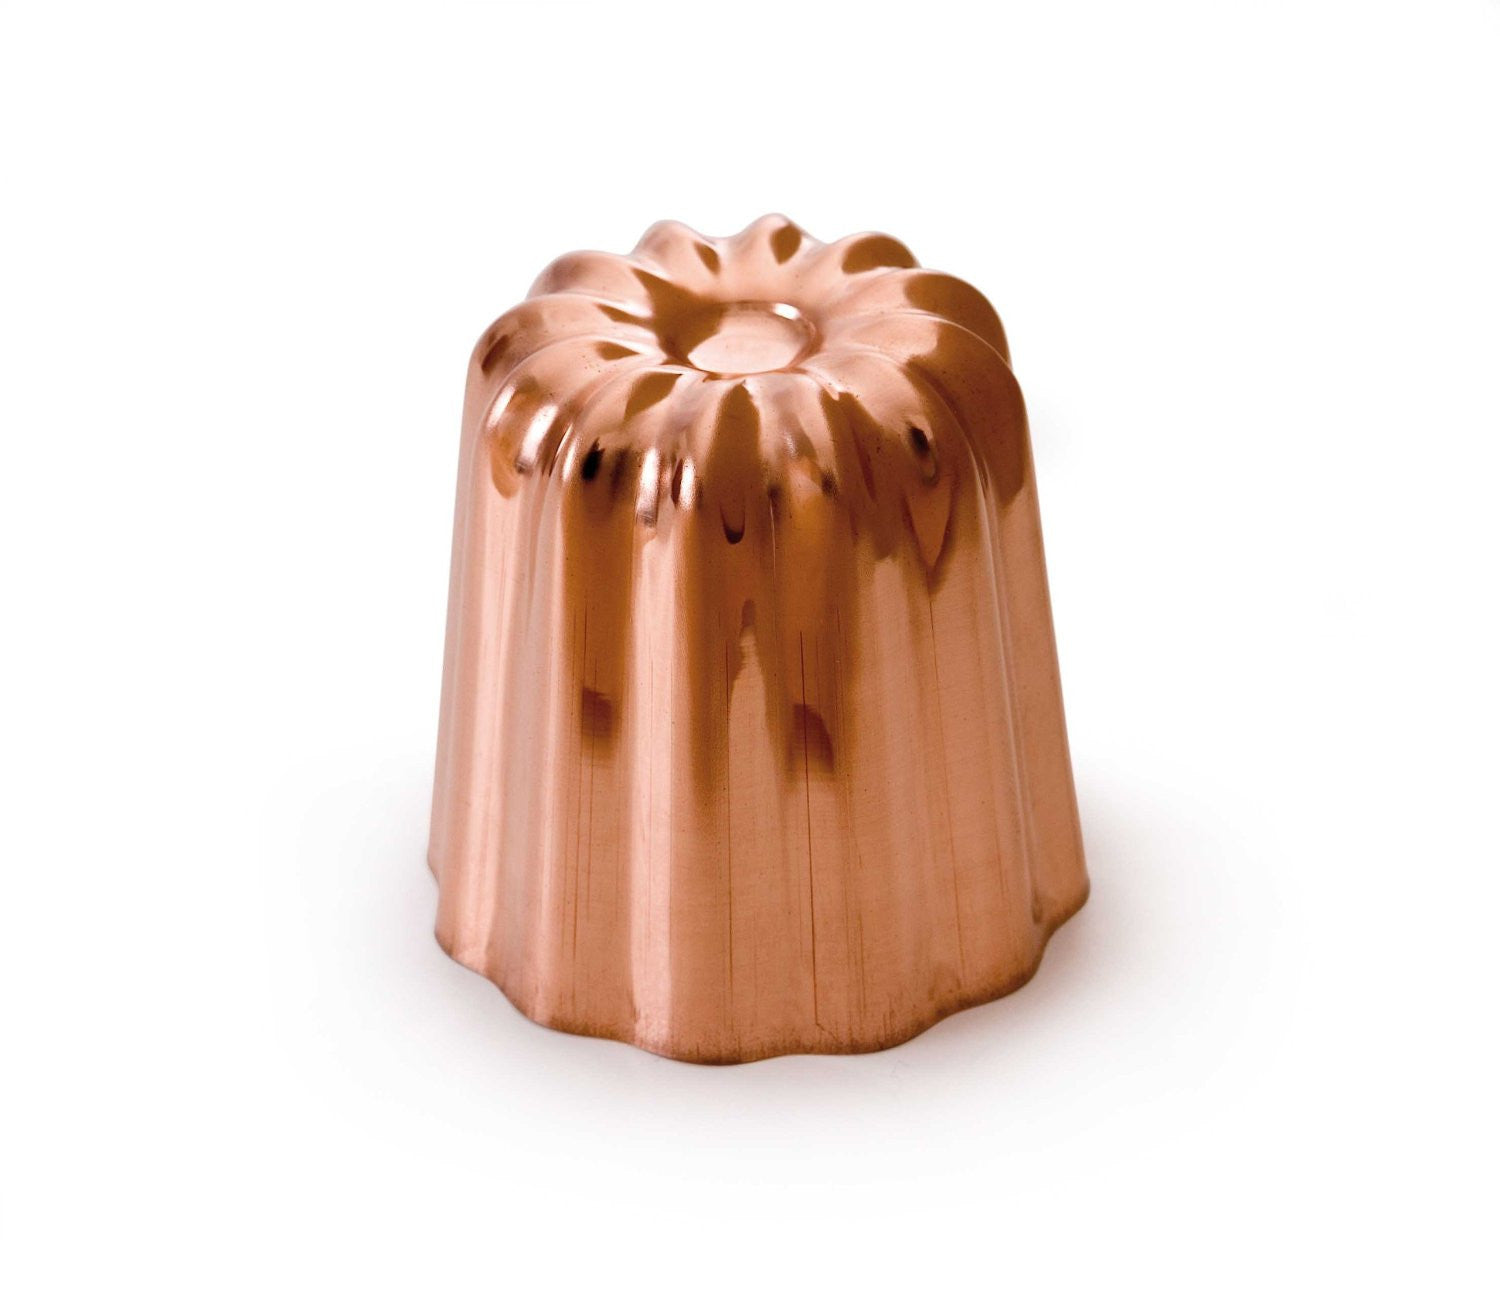 Copper Canele Mold - Mauviel France